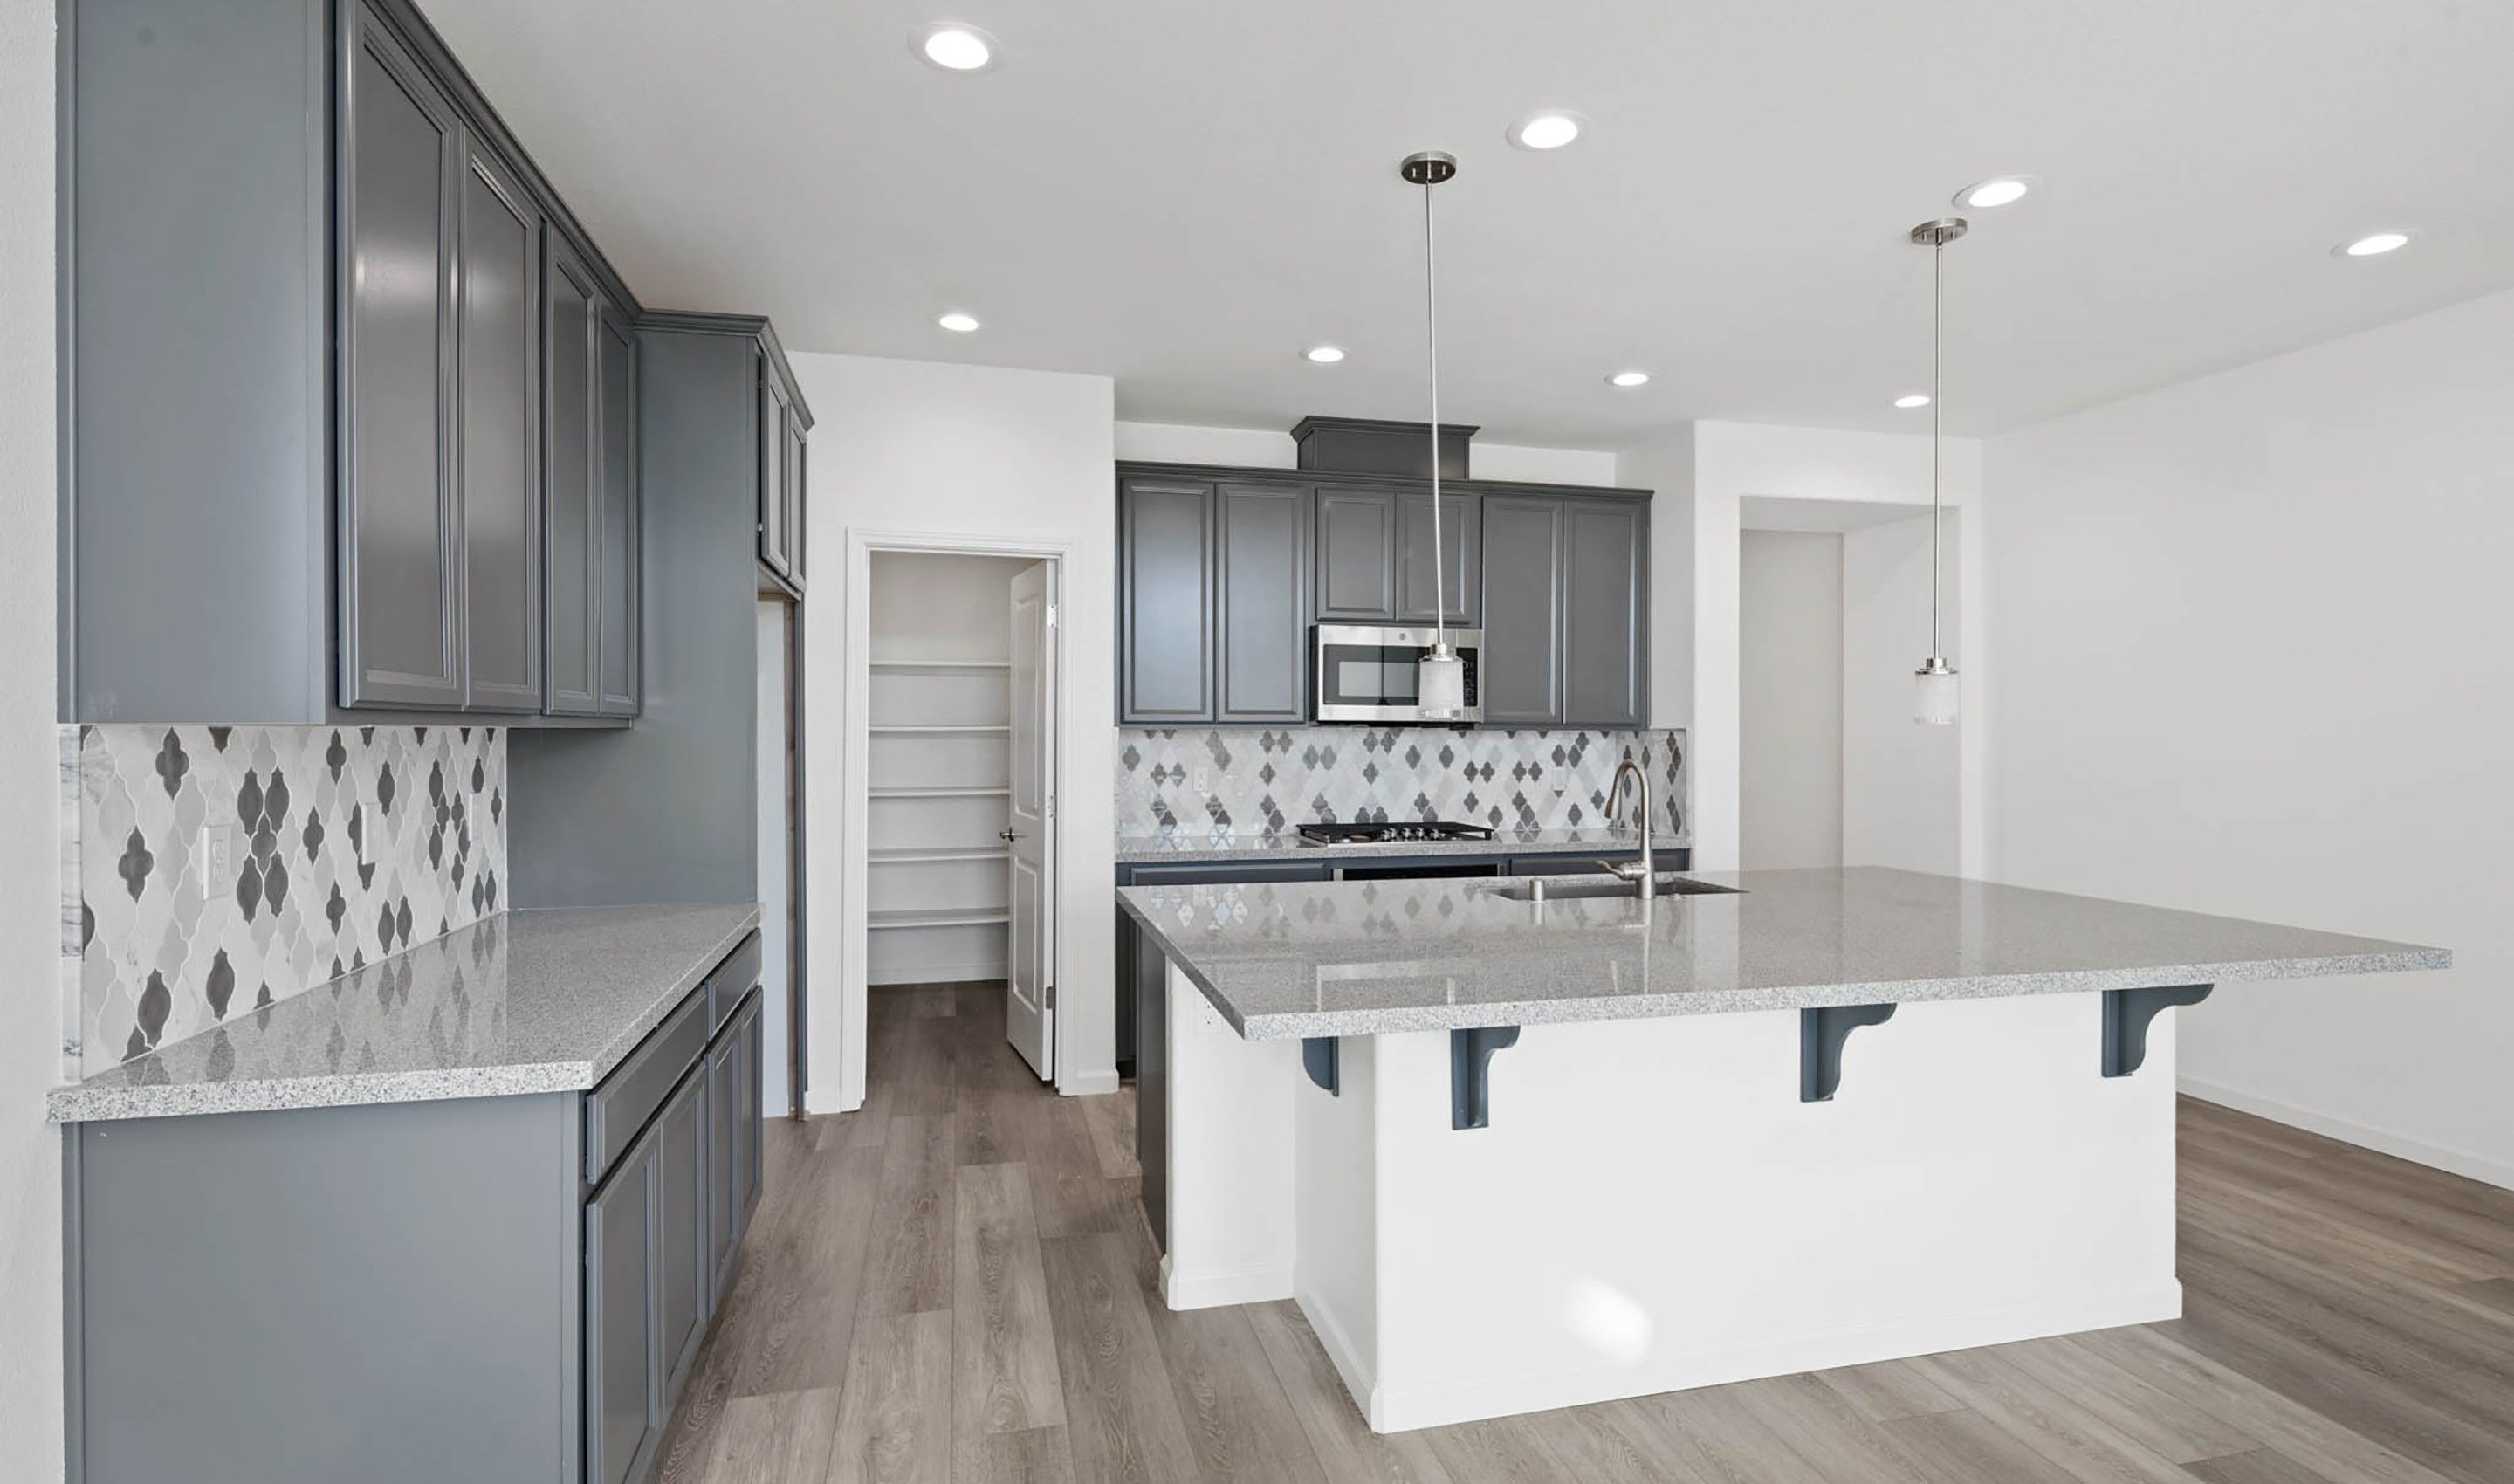 Kitchen featured in the Homage By K. Hovnanian® Homes in Oakland-Alameda, CA